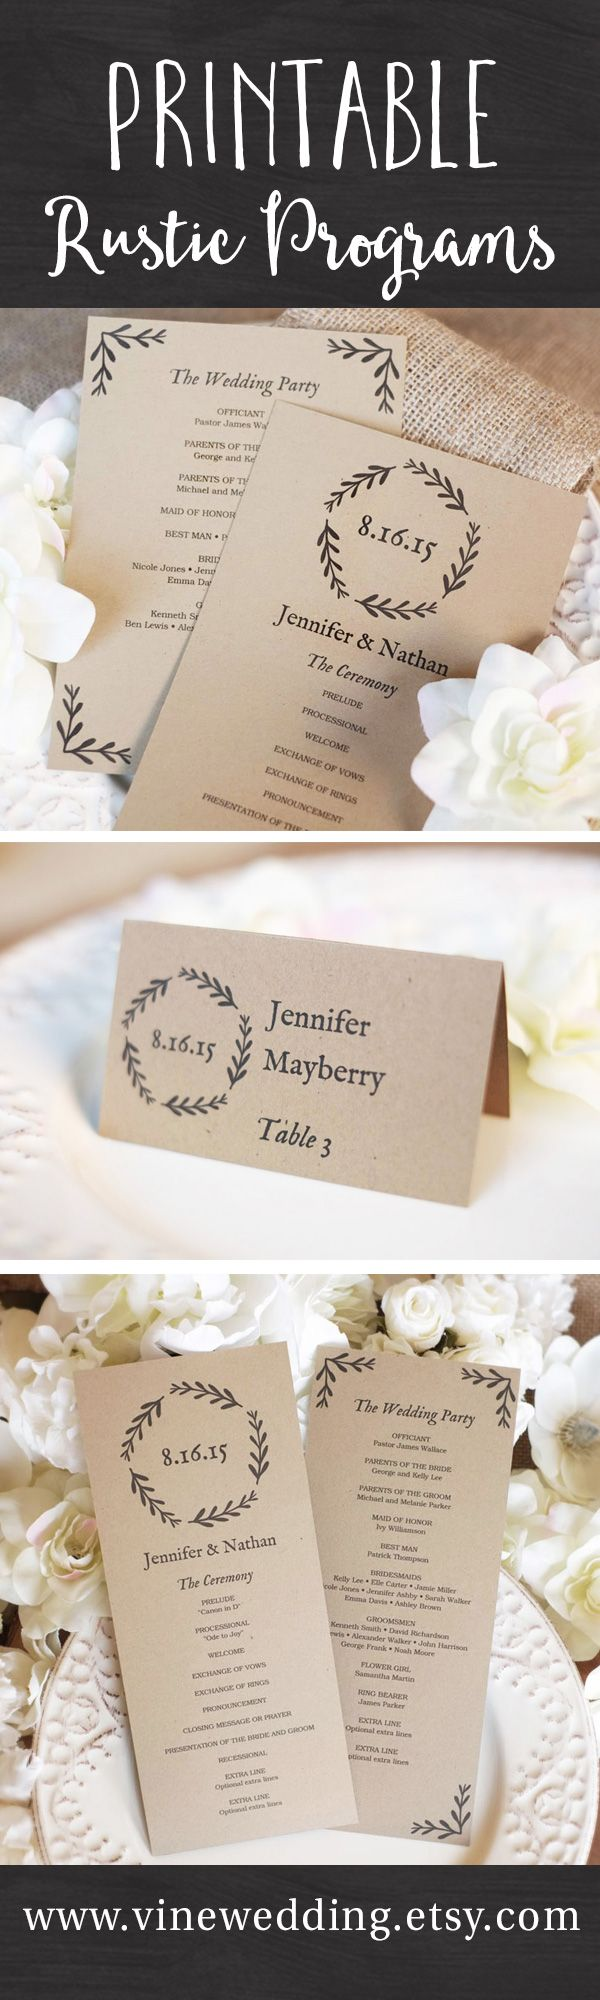 88 best Wedding Programs images on Pinterest | Weddings, Invitations ...